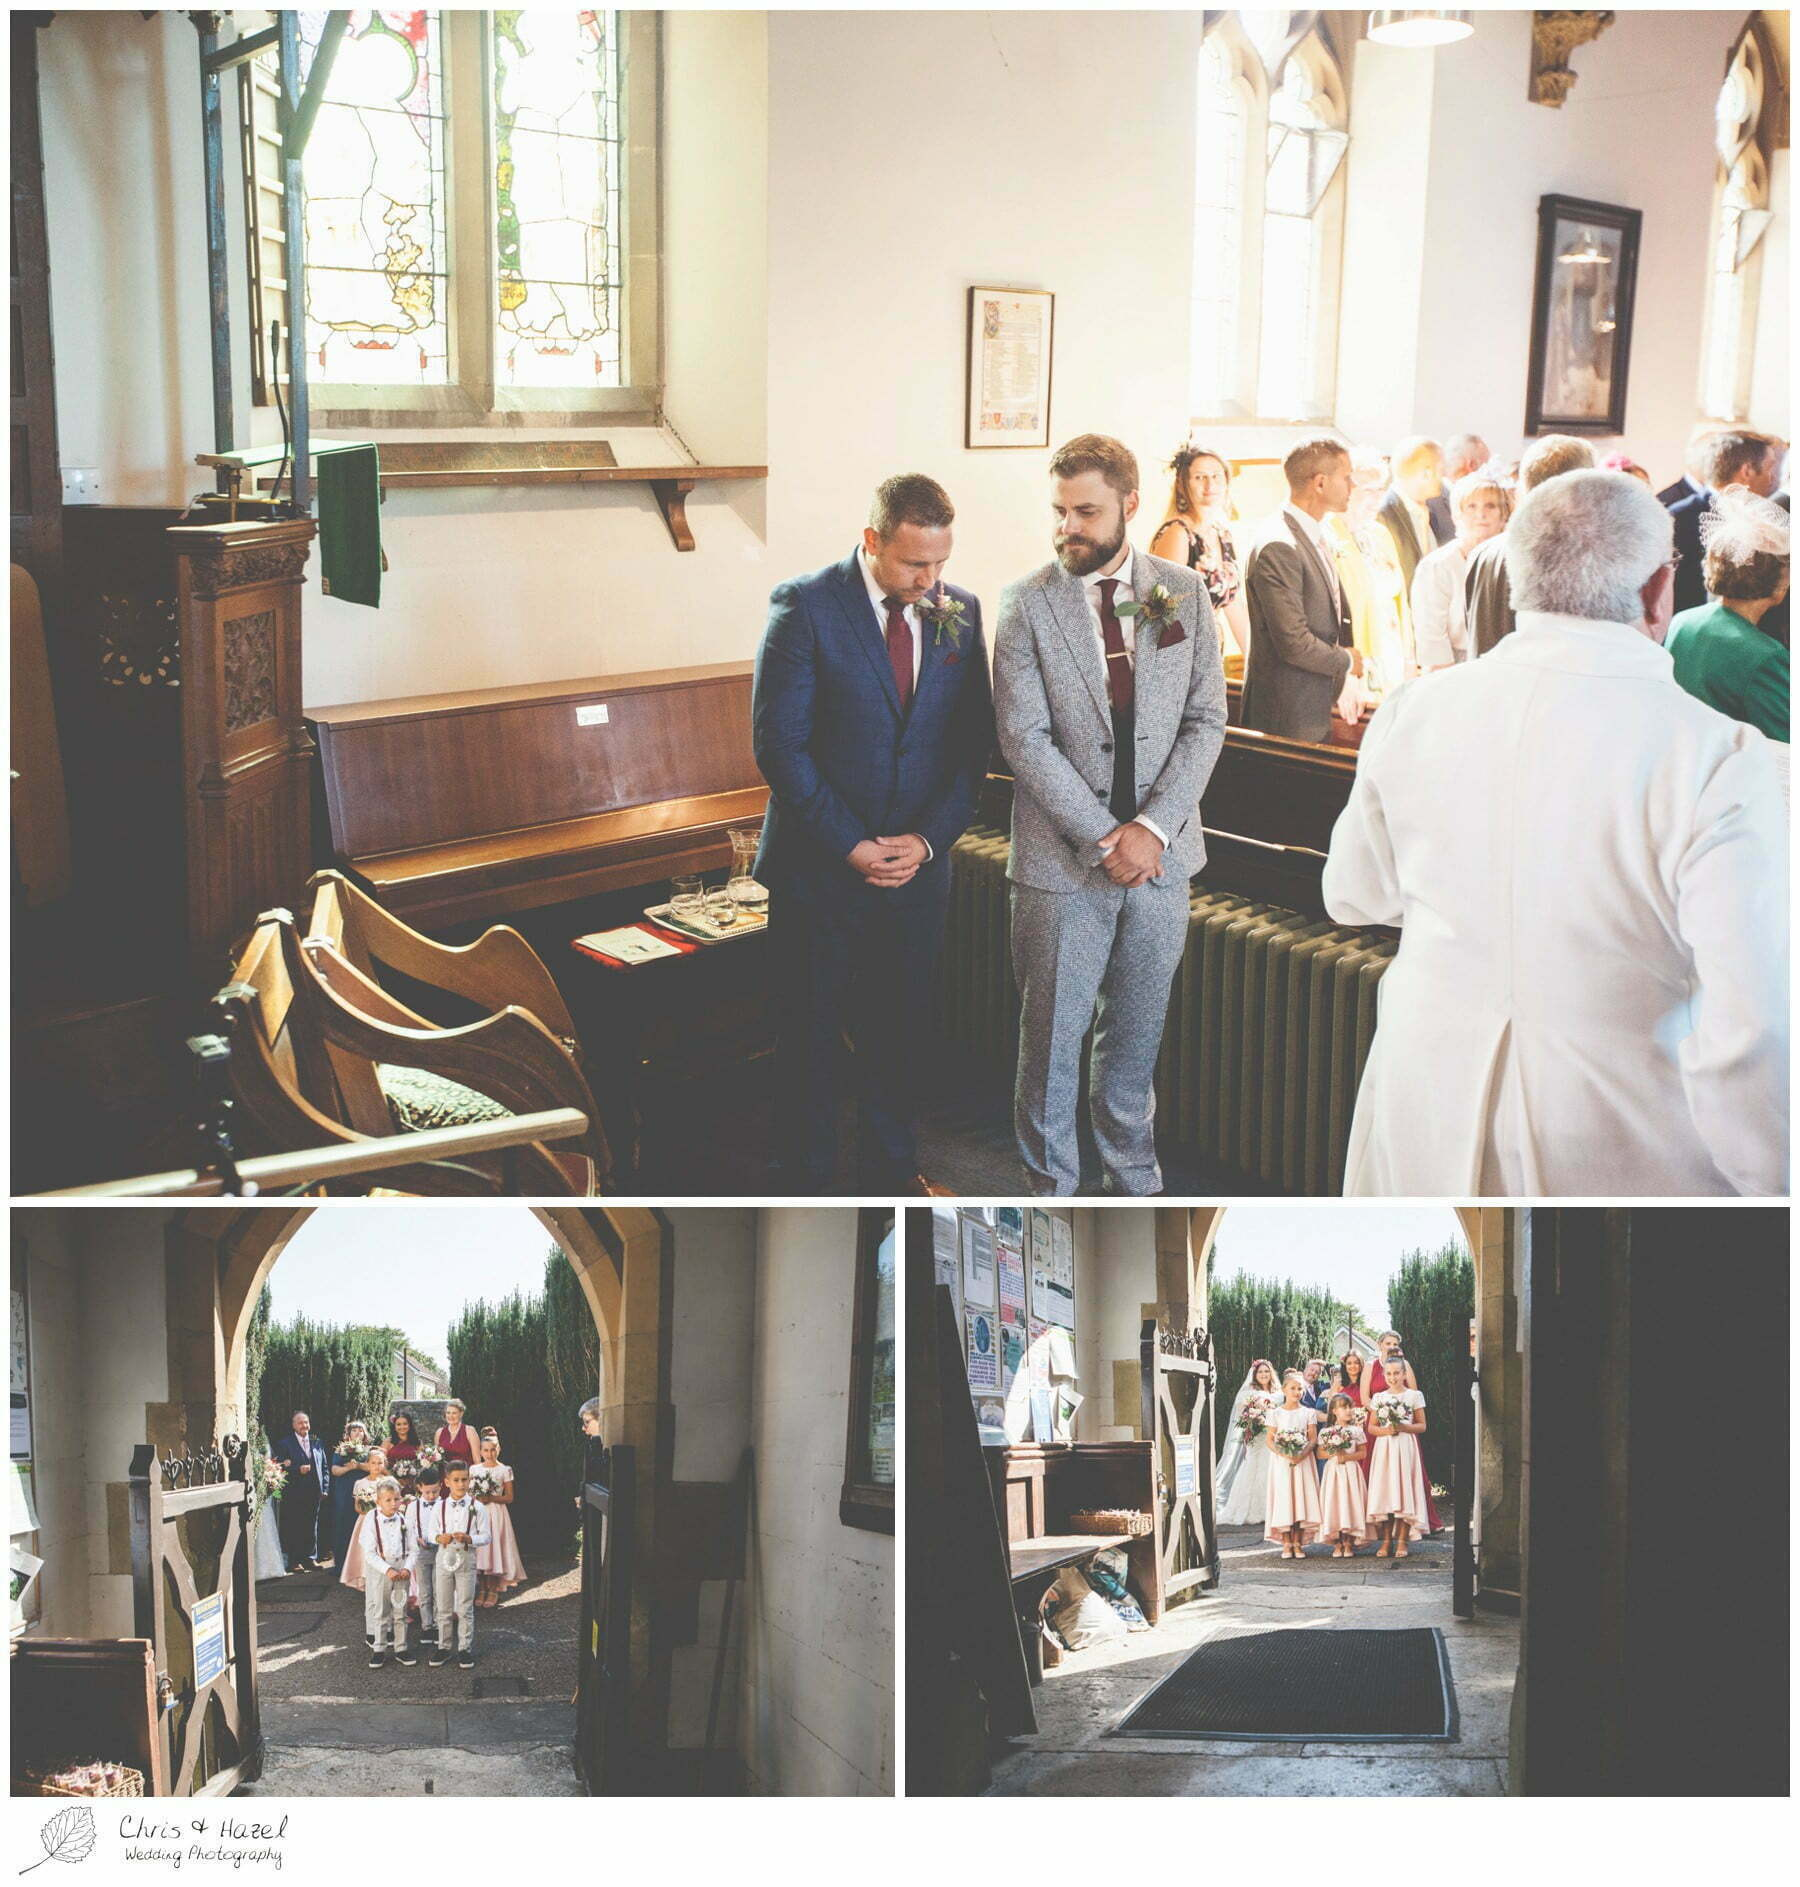 Bridesmaids and Page Boys outside Hilperton Church, St Michael & All Angels' Church, Wedding Photography, Wiltshire Wedding Photographer Trowbridge, Chris and Hazel Wedding Photography